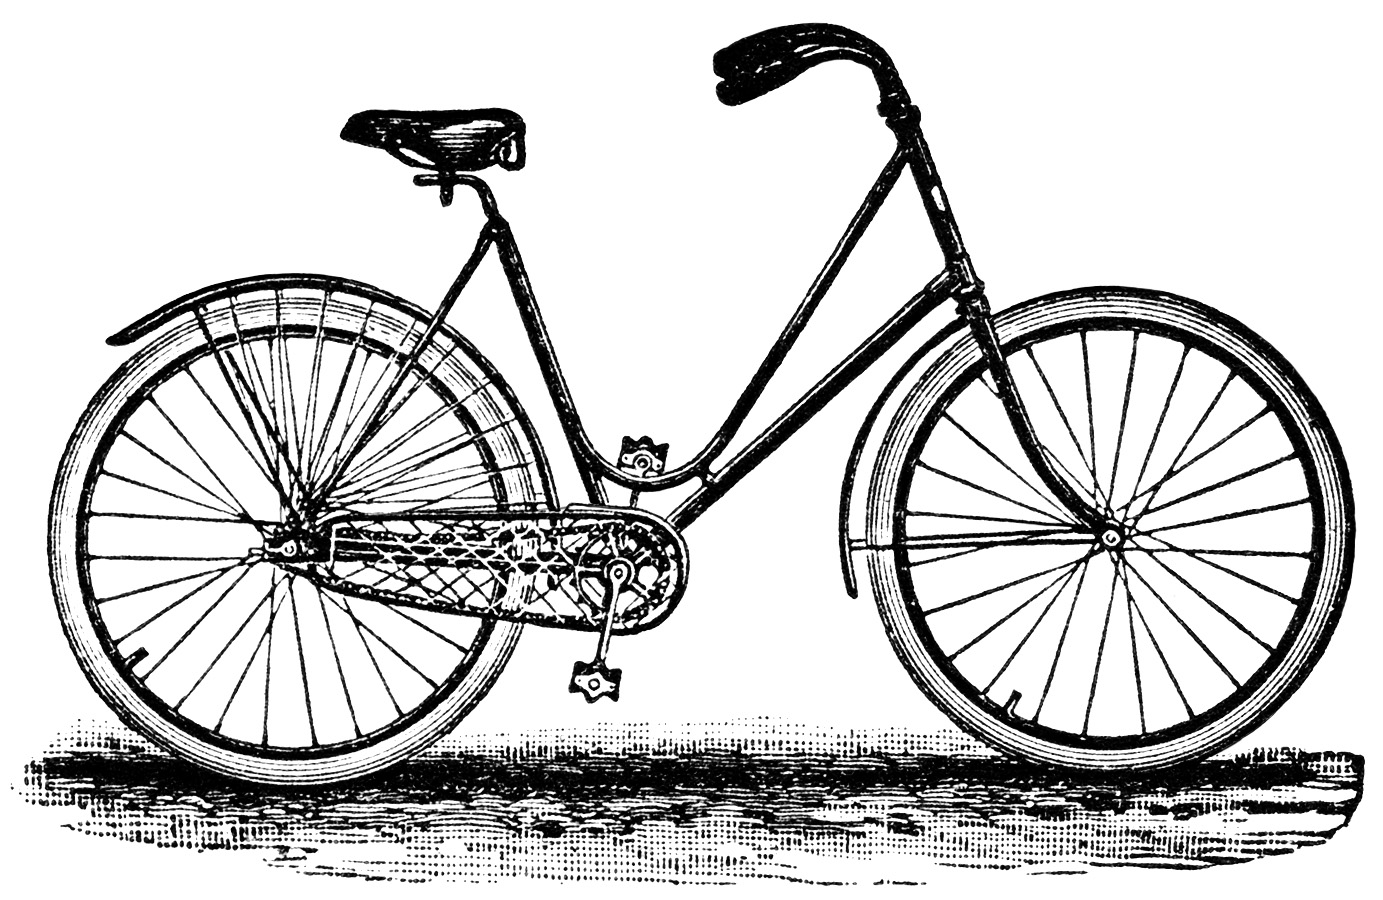 Bike clipart black and white On Nr best about Pinterest